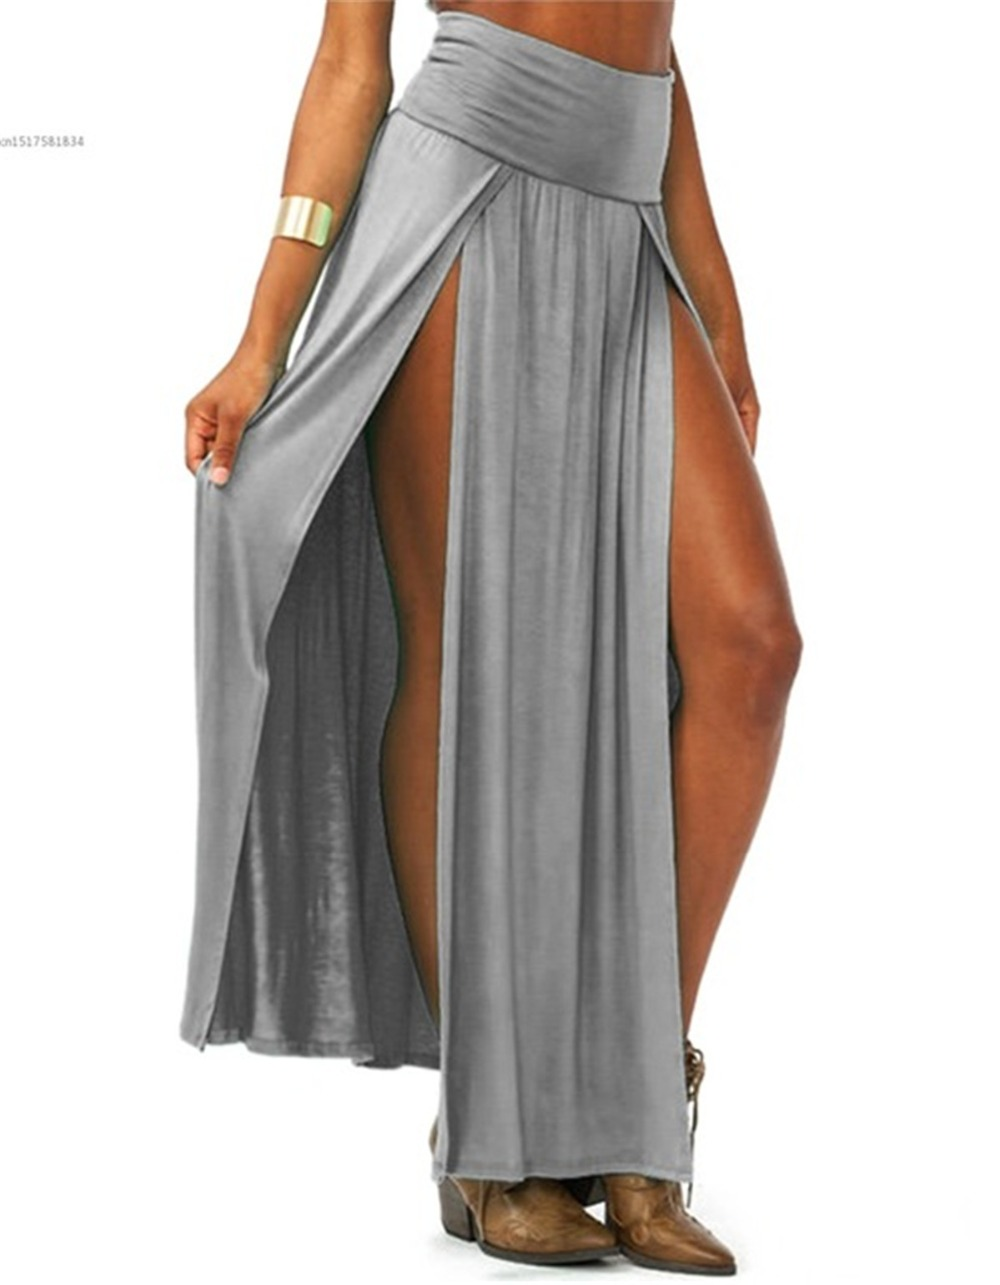 2019-New-Arrival-High-Waisted-Sexy-Womens-Double-Slits-Summer-Solid-Long-Maxi-Skirt-Wholesale-51.jpg_640x640 (1)